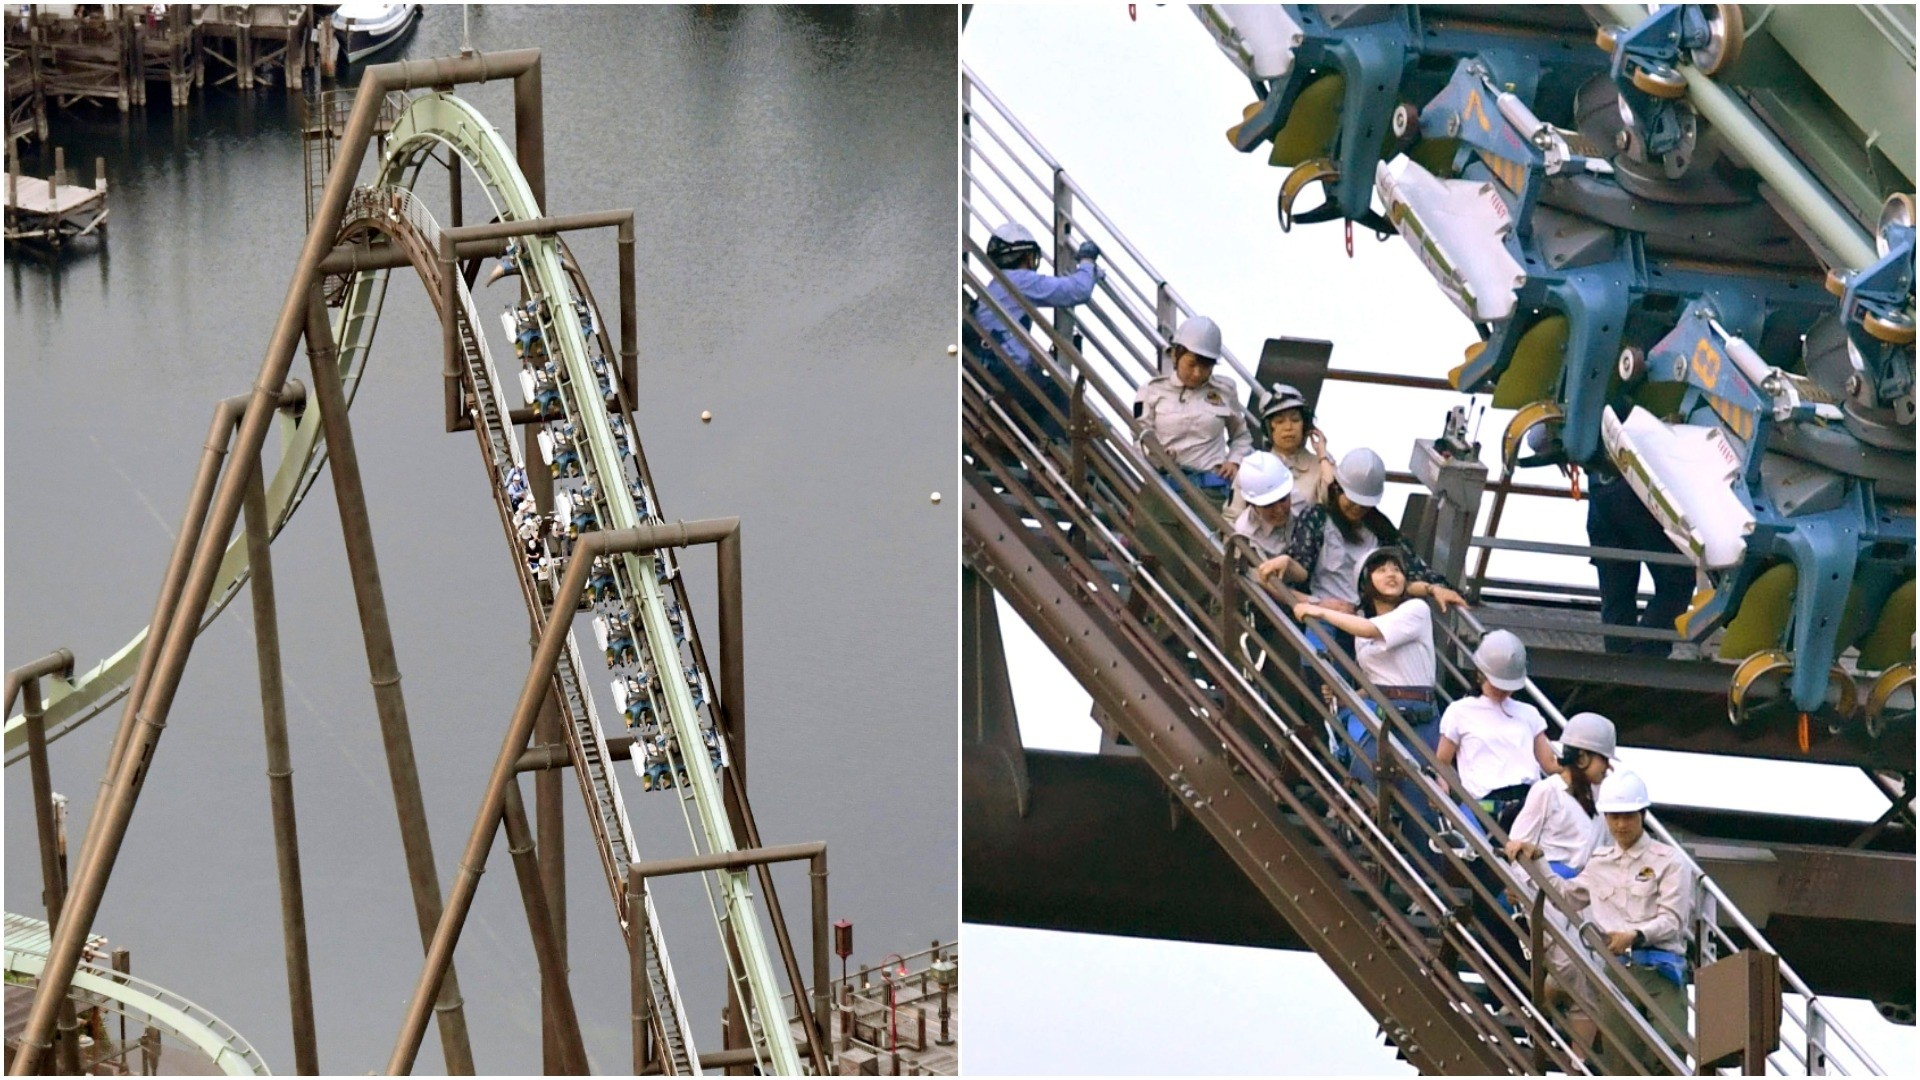 In this Tuesday, May 1, 2018, photo, passengers are rescued from the stopped Flying Dinosaur rollercoaster at Universal Studios Japan amusement park in Osaka, western Japan. (AP Photo)